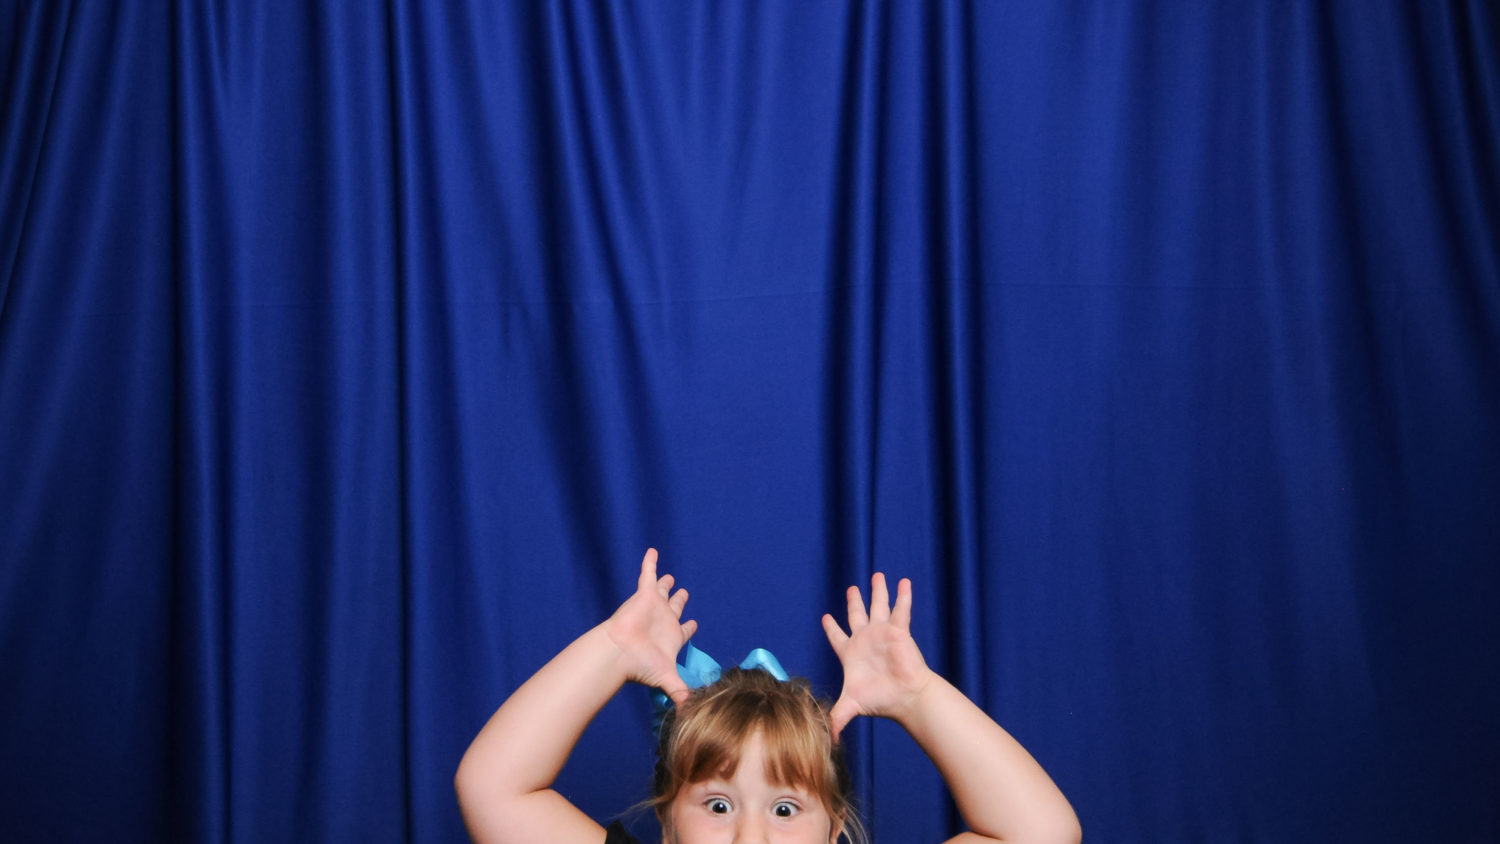 hilarious kids in wedding photo booth